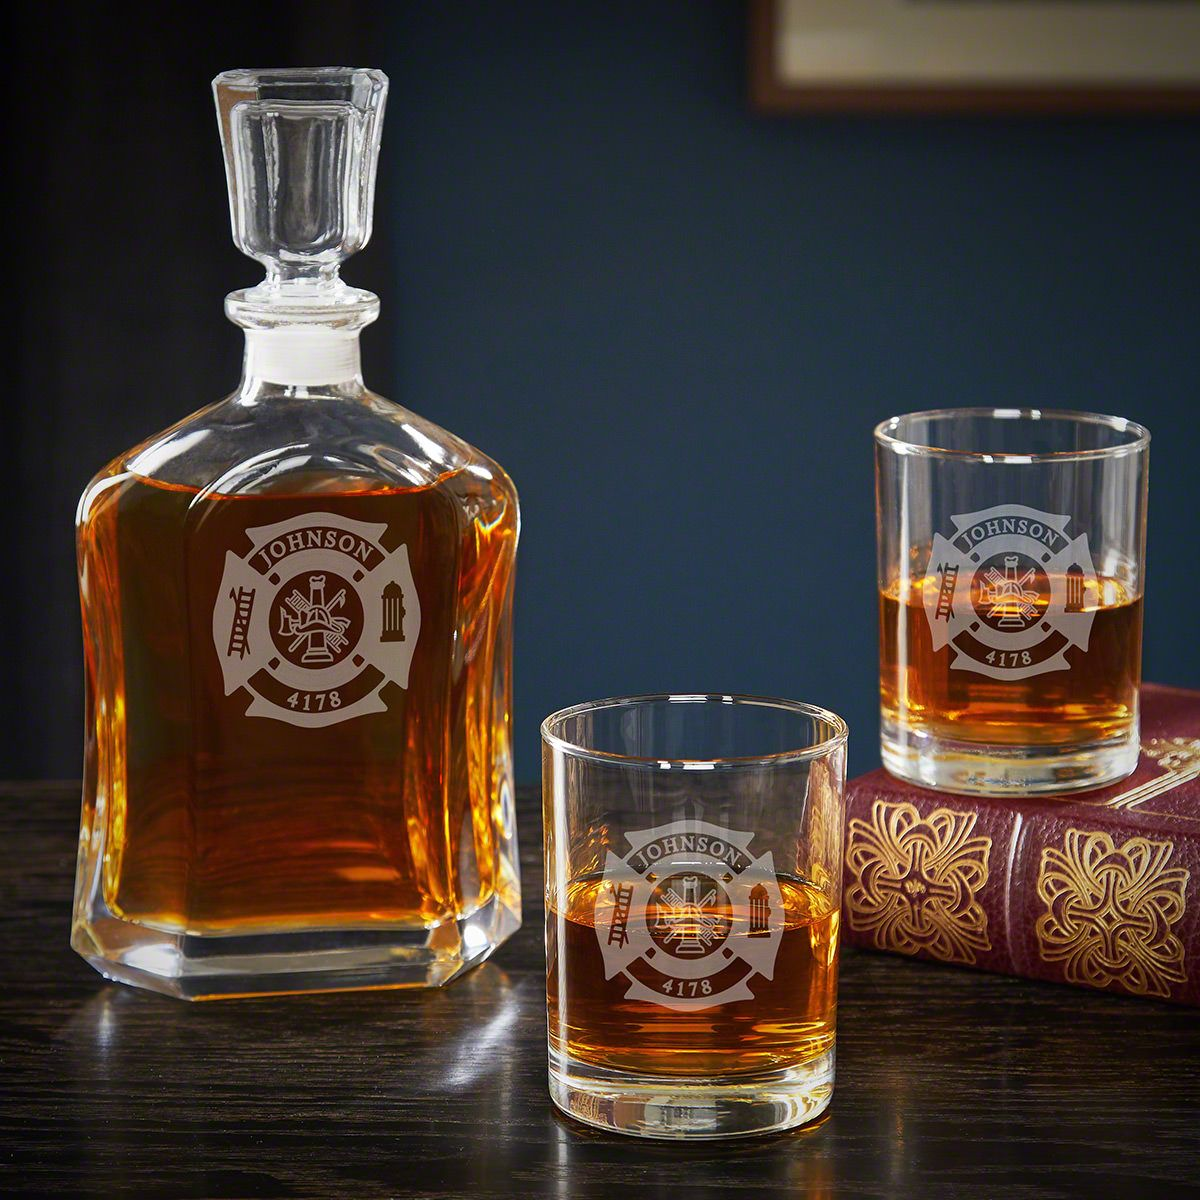 Fire and Rescue Personalized Decanter Set with Rocks Glasses – Firefighter Gift Idea